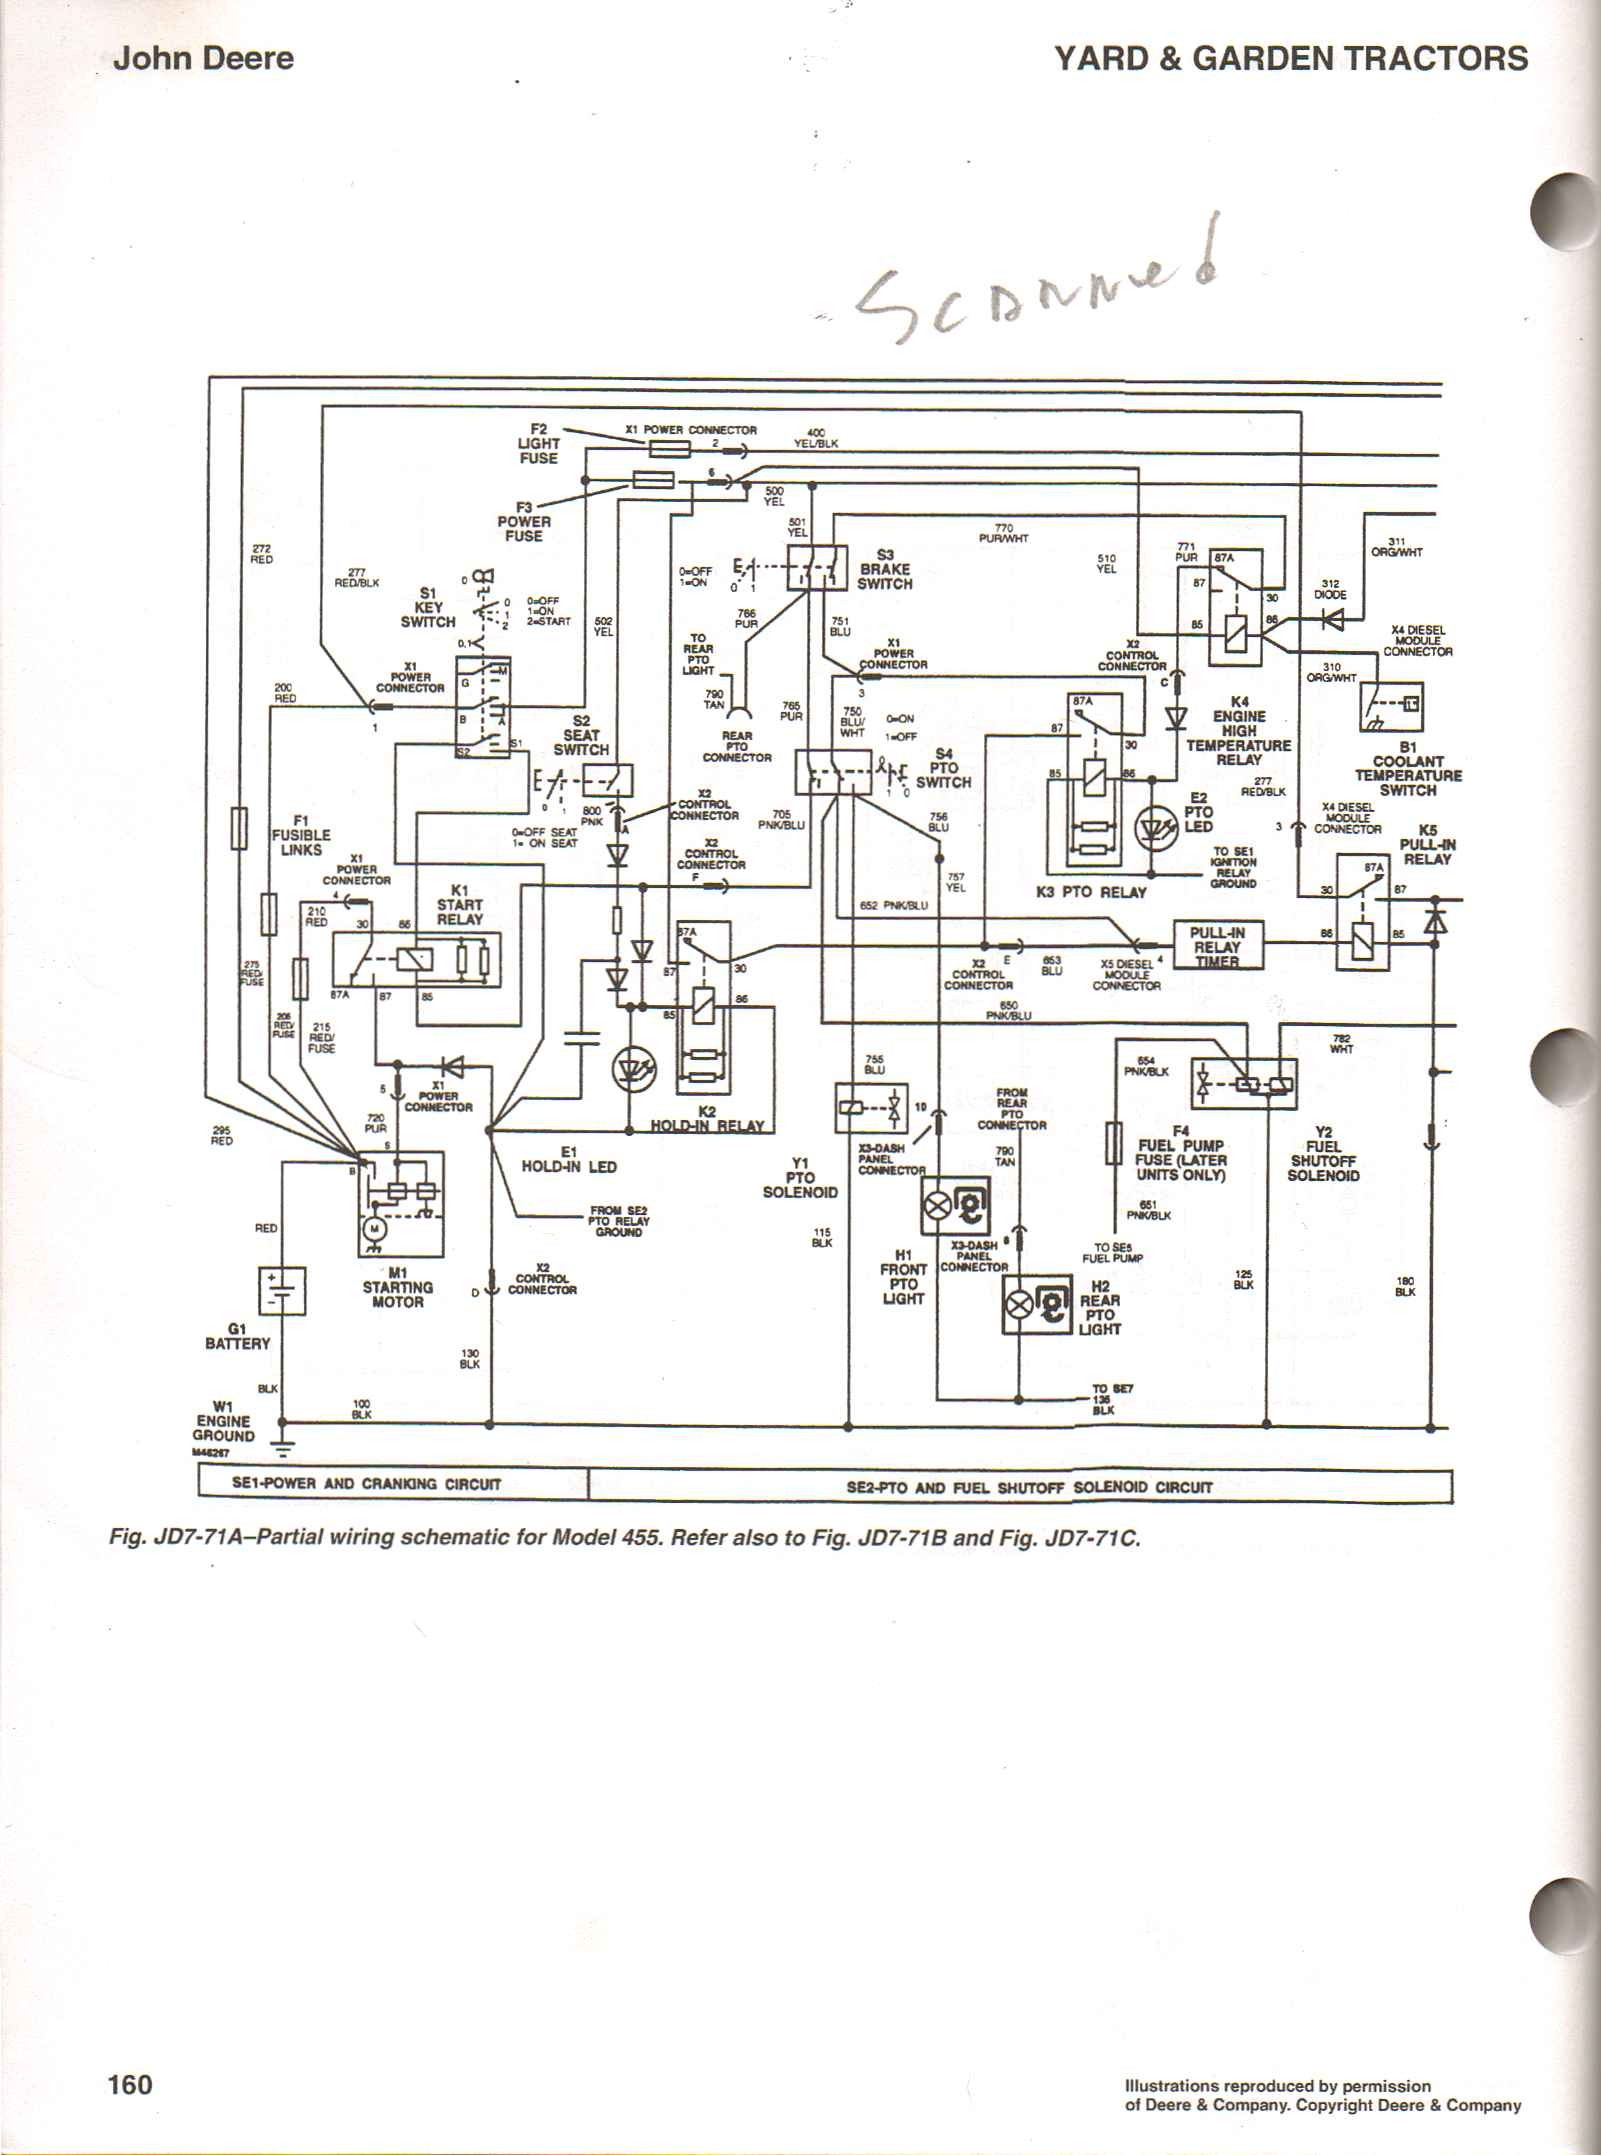 John Deere 2510 Wiring Schematic List Of Circuit Diagram Jd 3020 445 U2022 Free Diagrams Rh Pcpersia Org